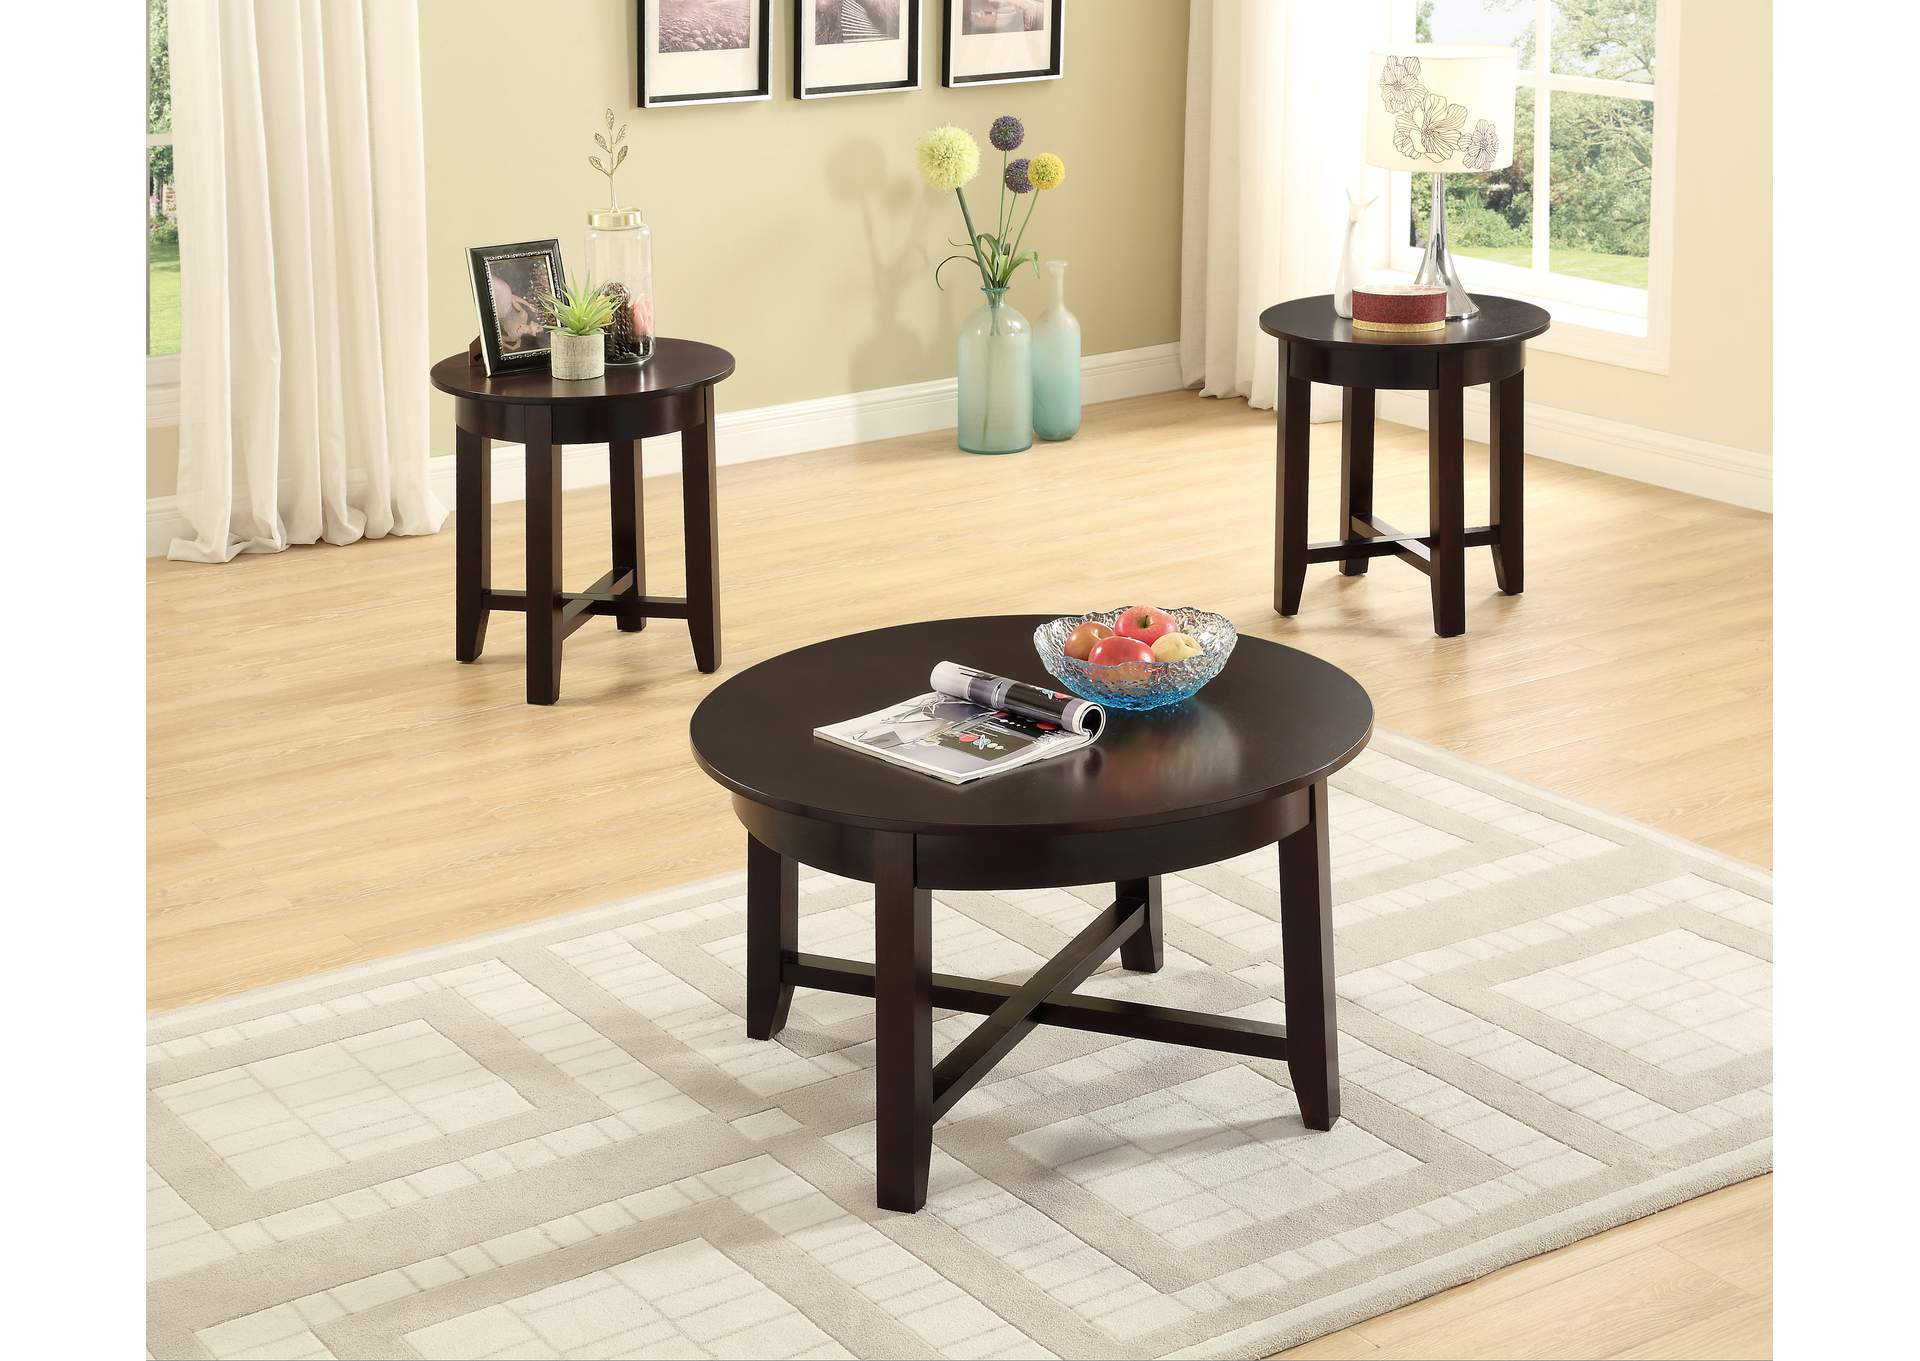 Brown 3 Piece Coffee & End Table Set,Global Trading